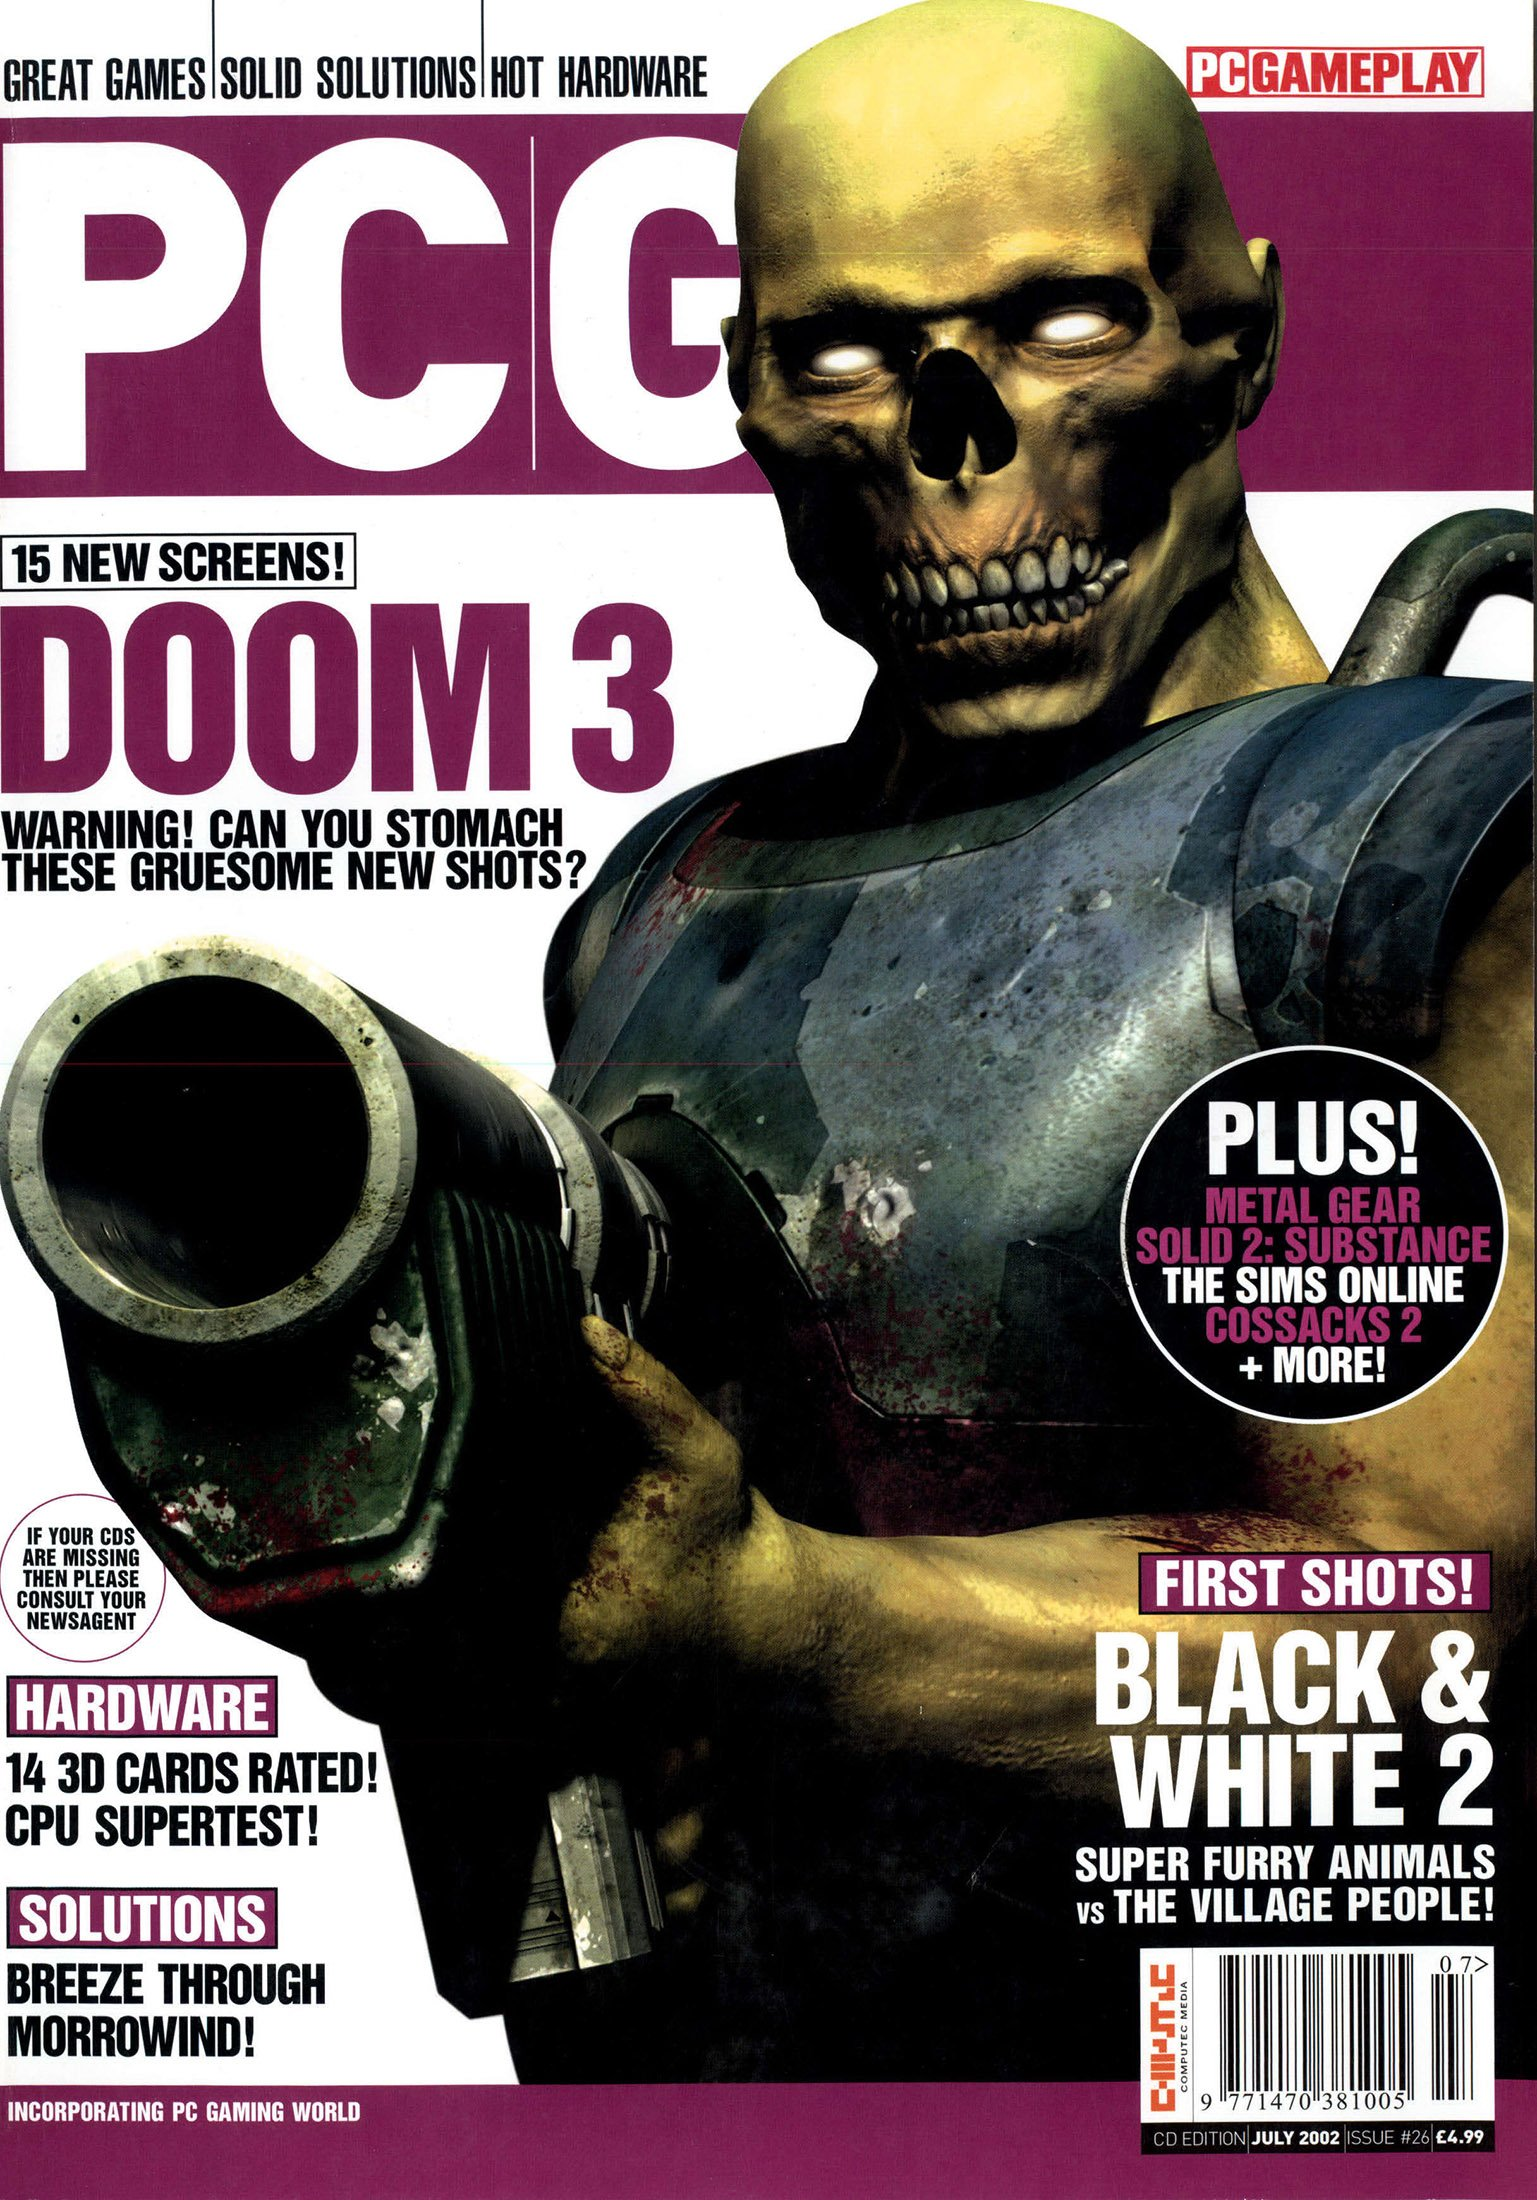 PC Gameplay Issue 26 (July 2002)